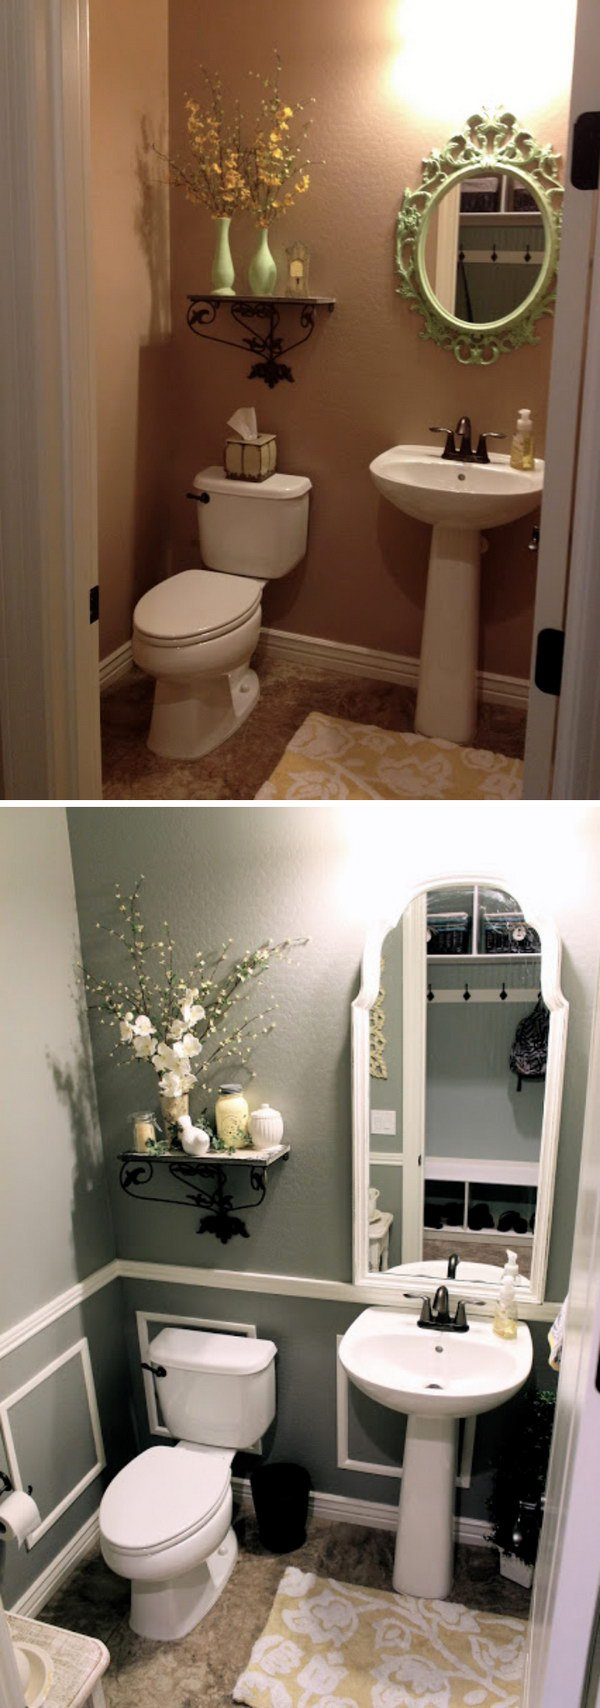 1-53-bathroom-remodel-before-and-after